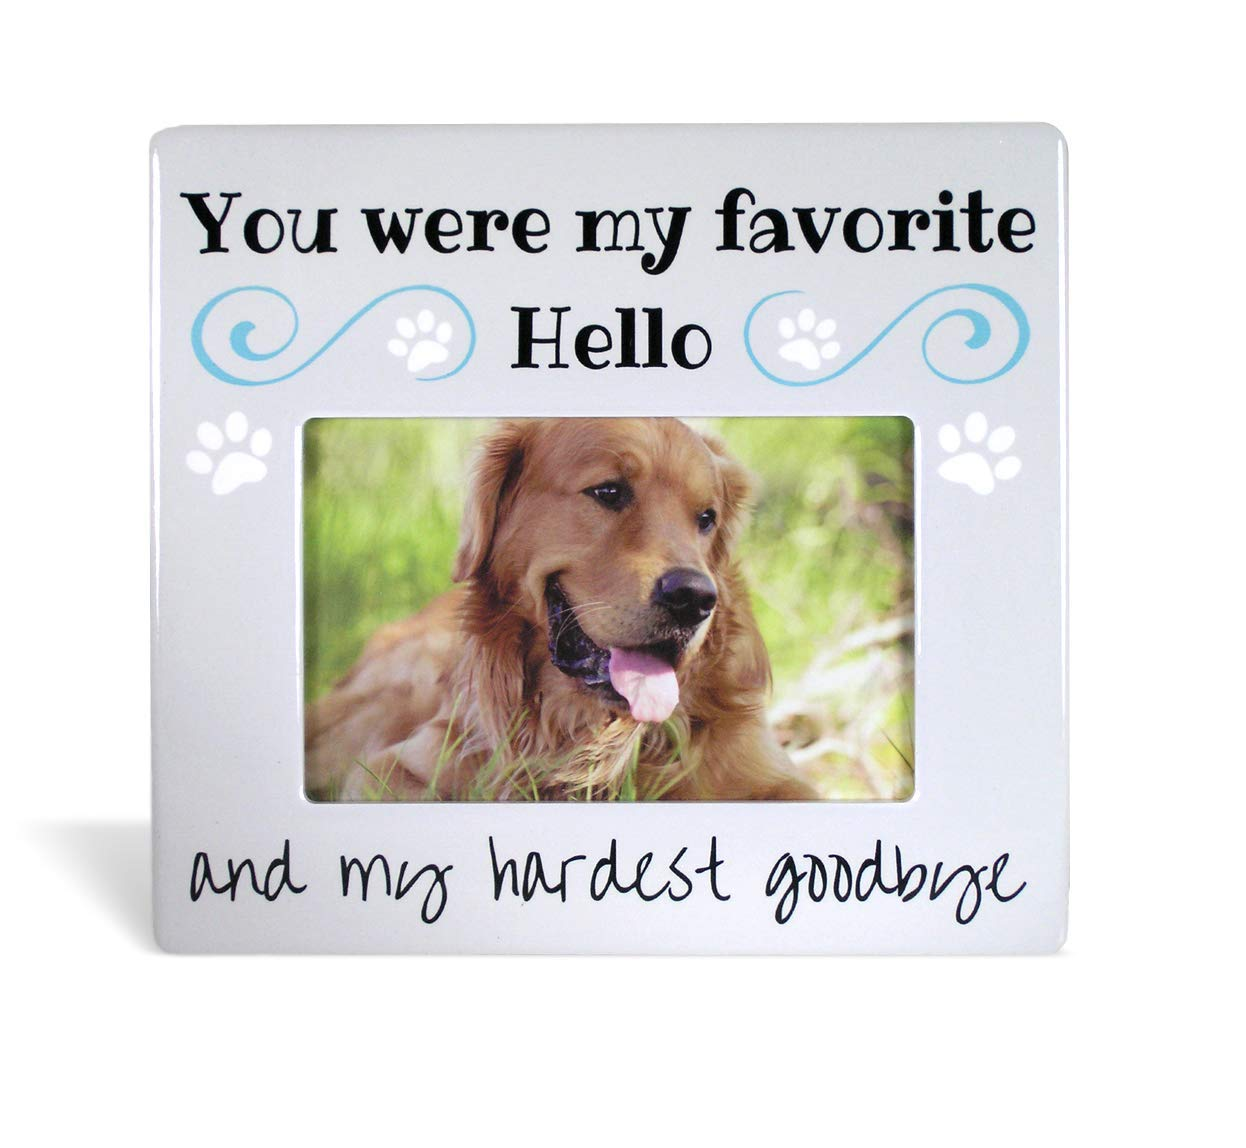 BANBERRY DESIGNS Pet Memorial Picture Frame - Bereavement Photo Frame for Dog or Cat - You were My Favorite Hello and My Hardest Goodbye 2355